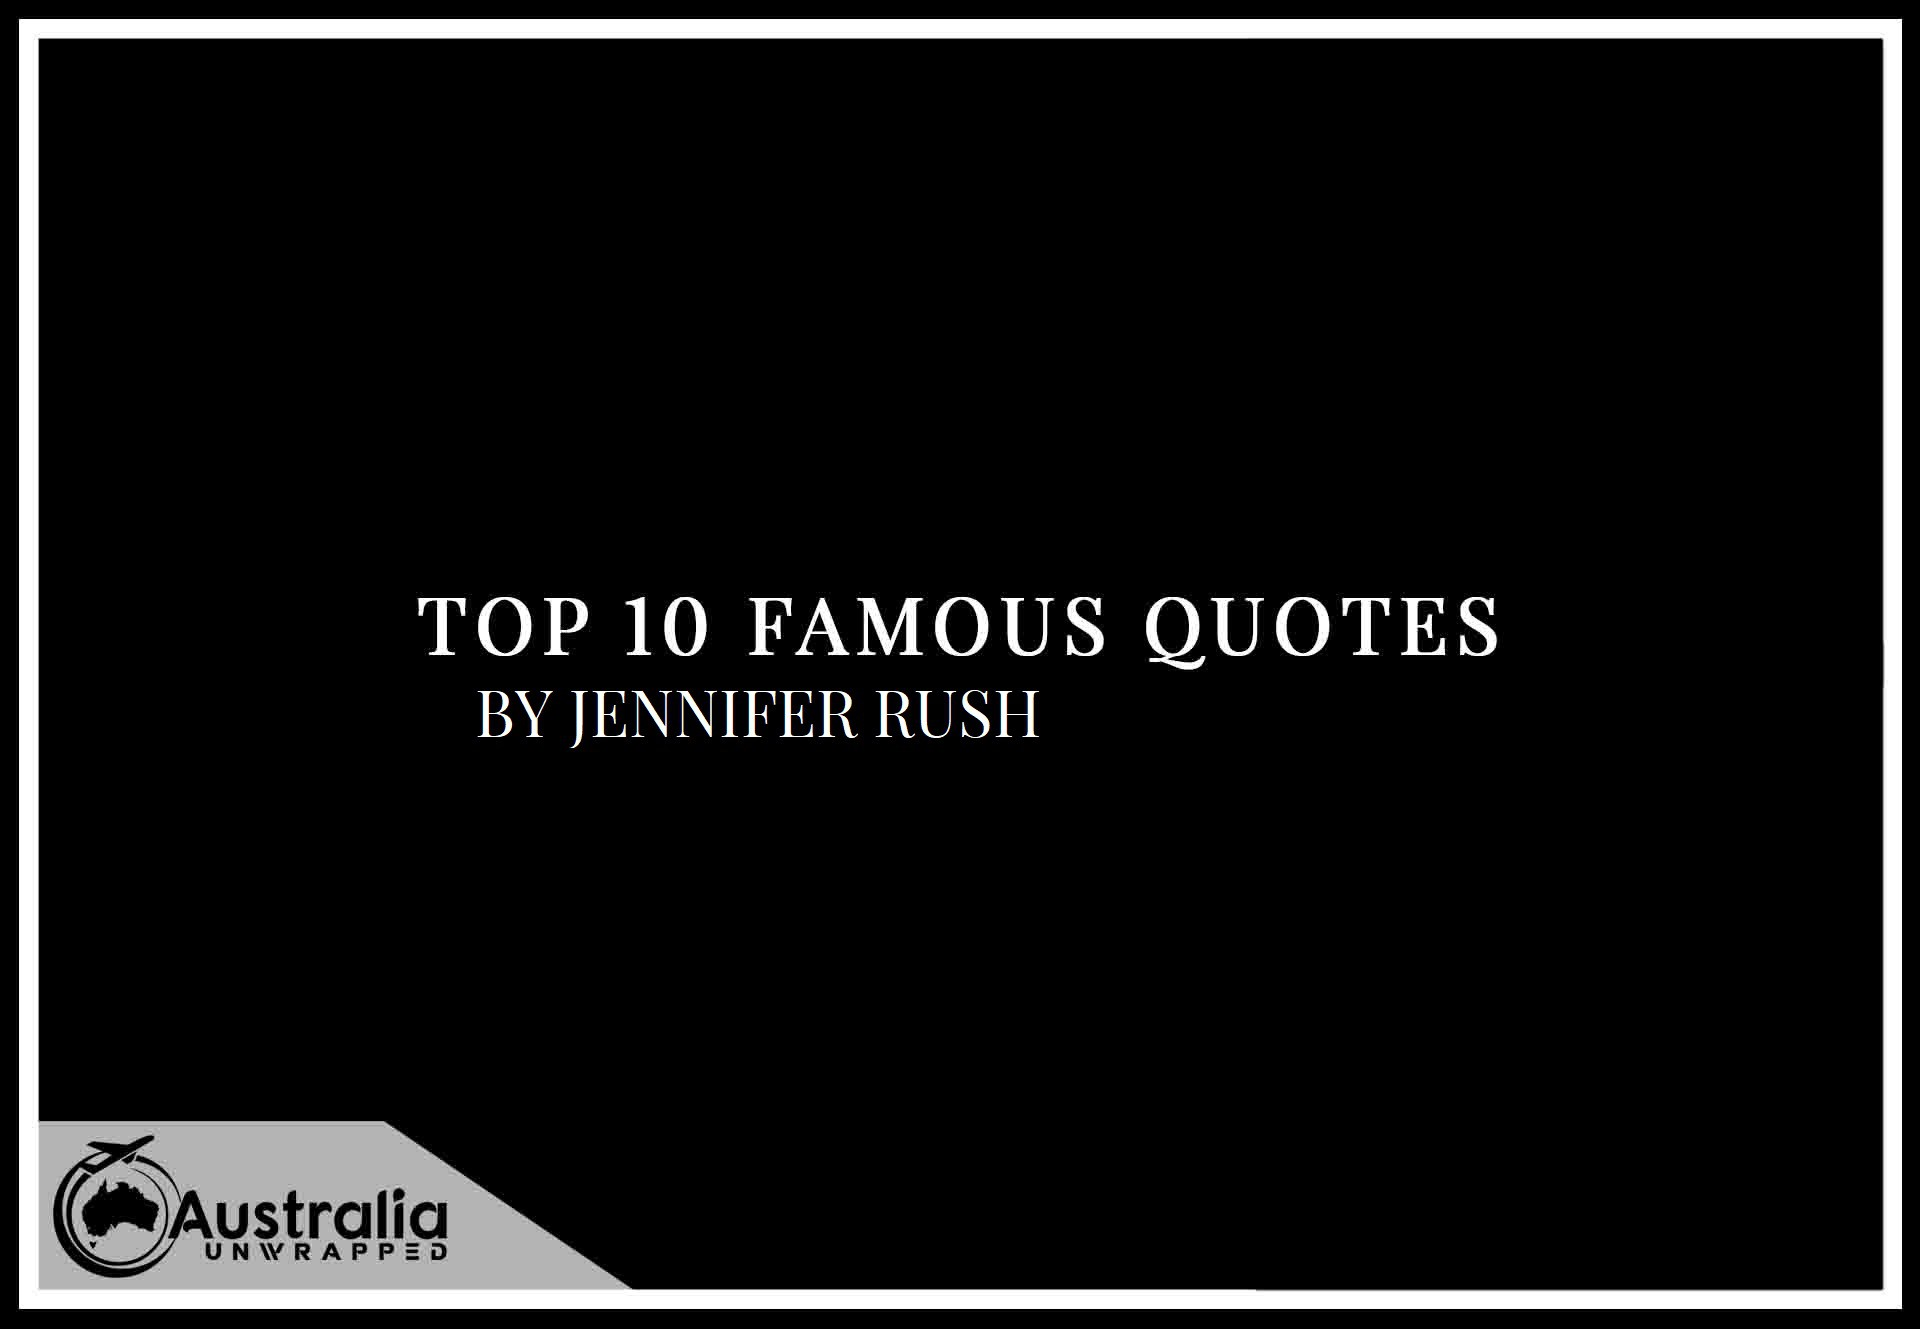 Top 10 Famous Quotes by Author Jennifer Rush